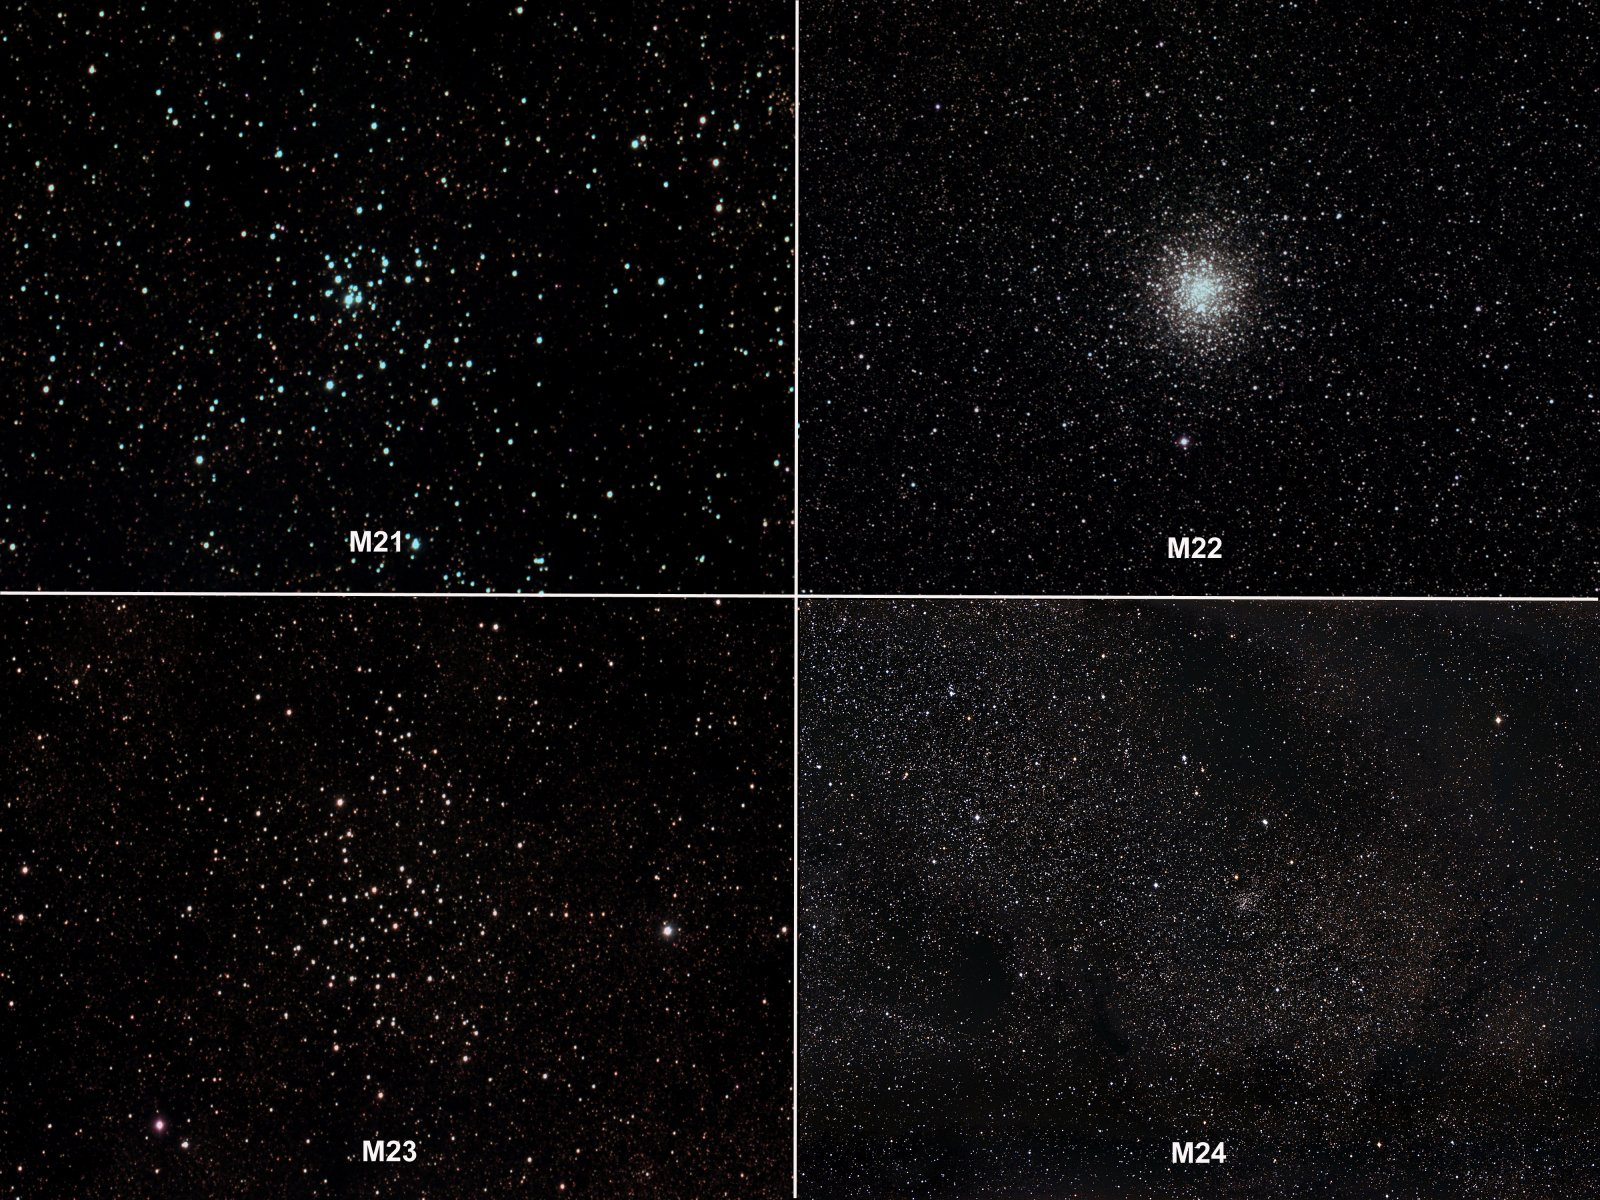 Messiers 21-24